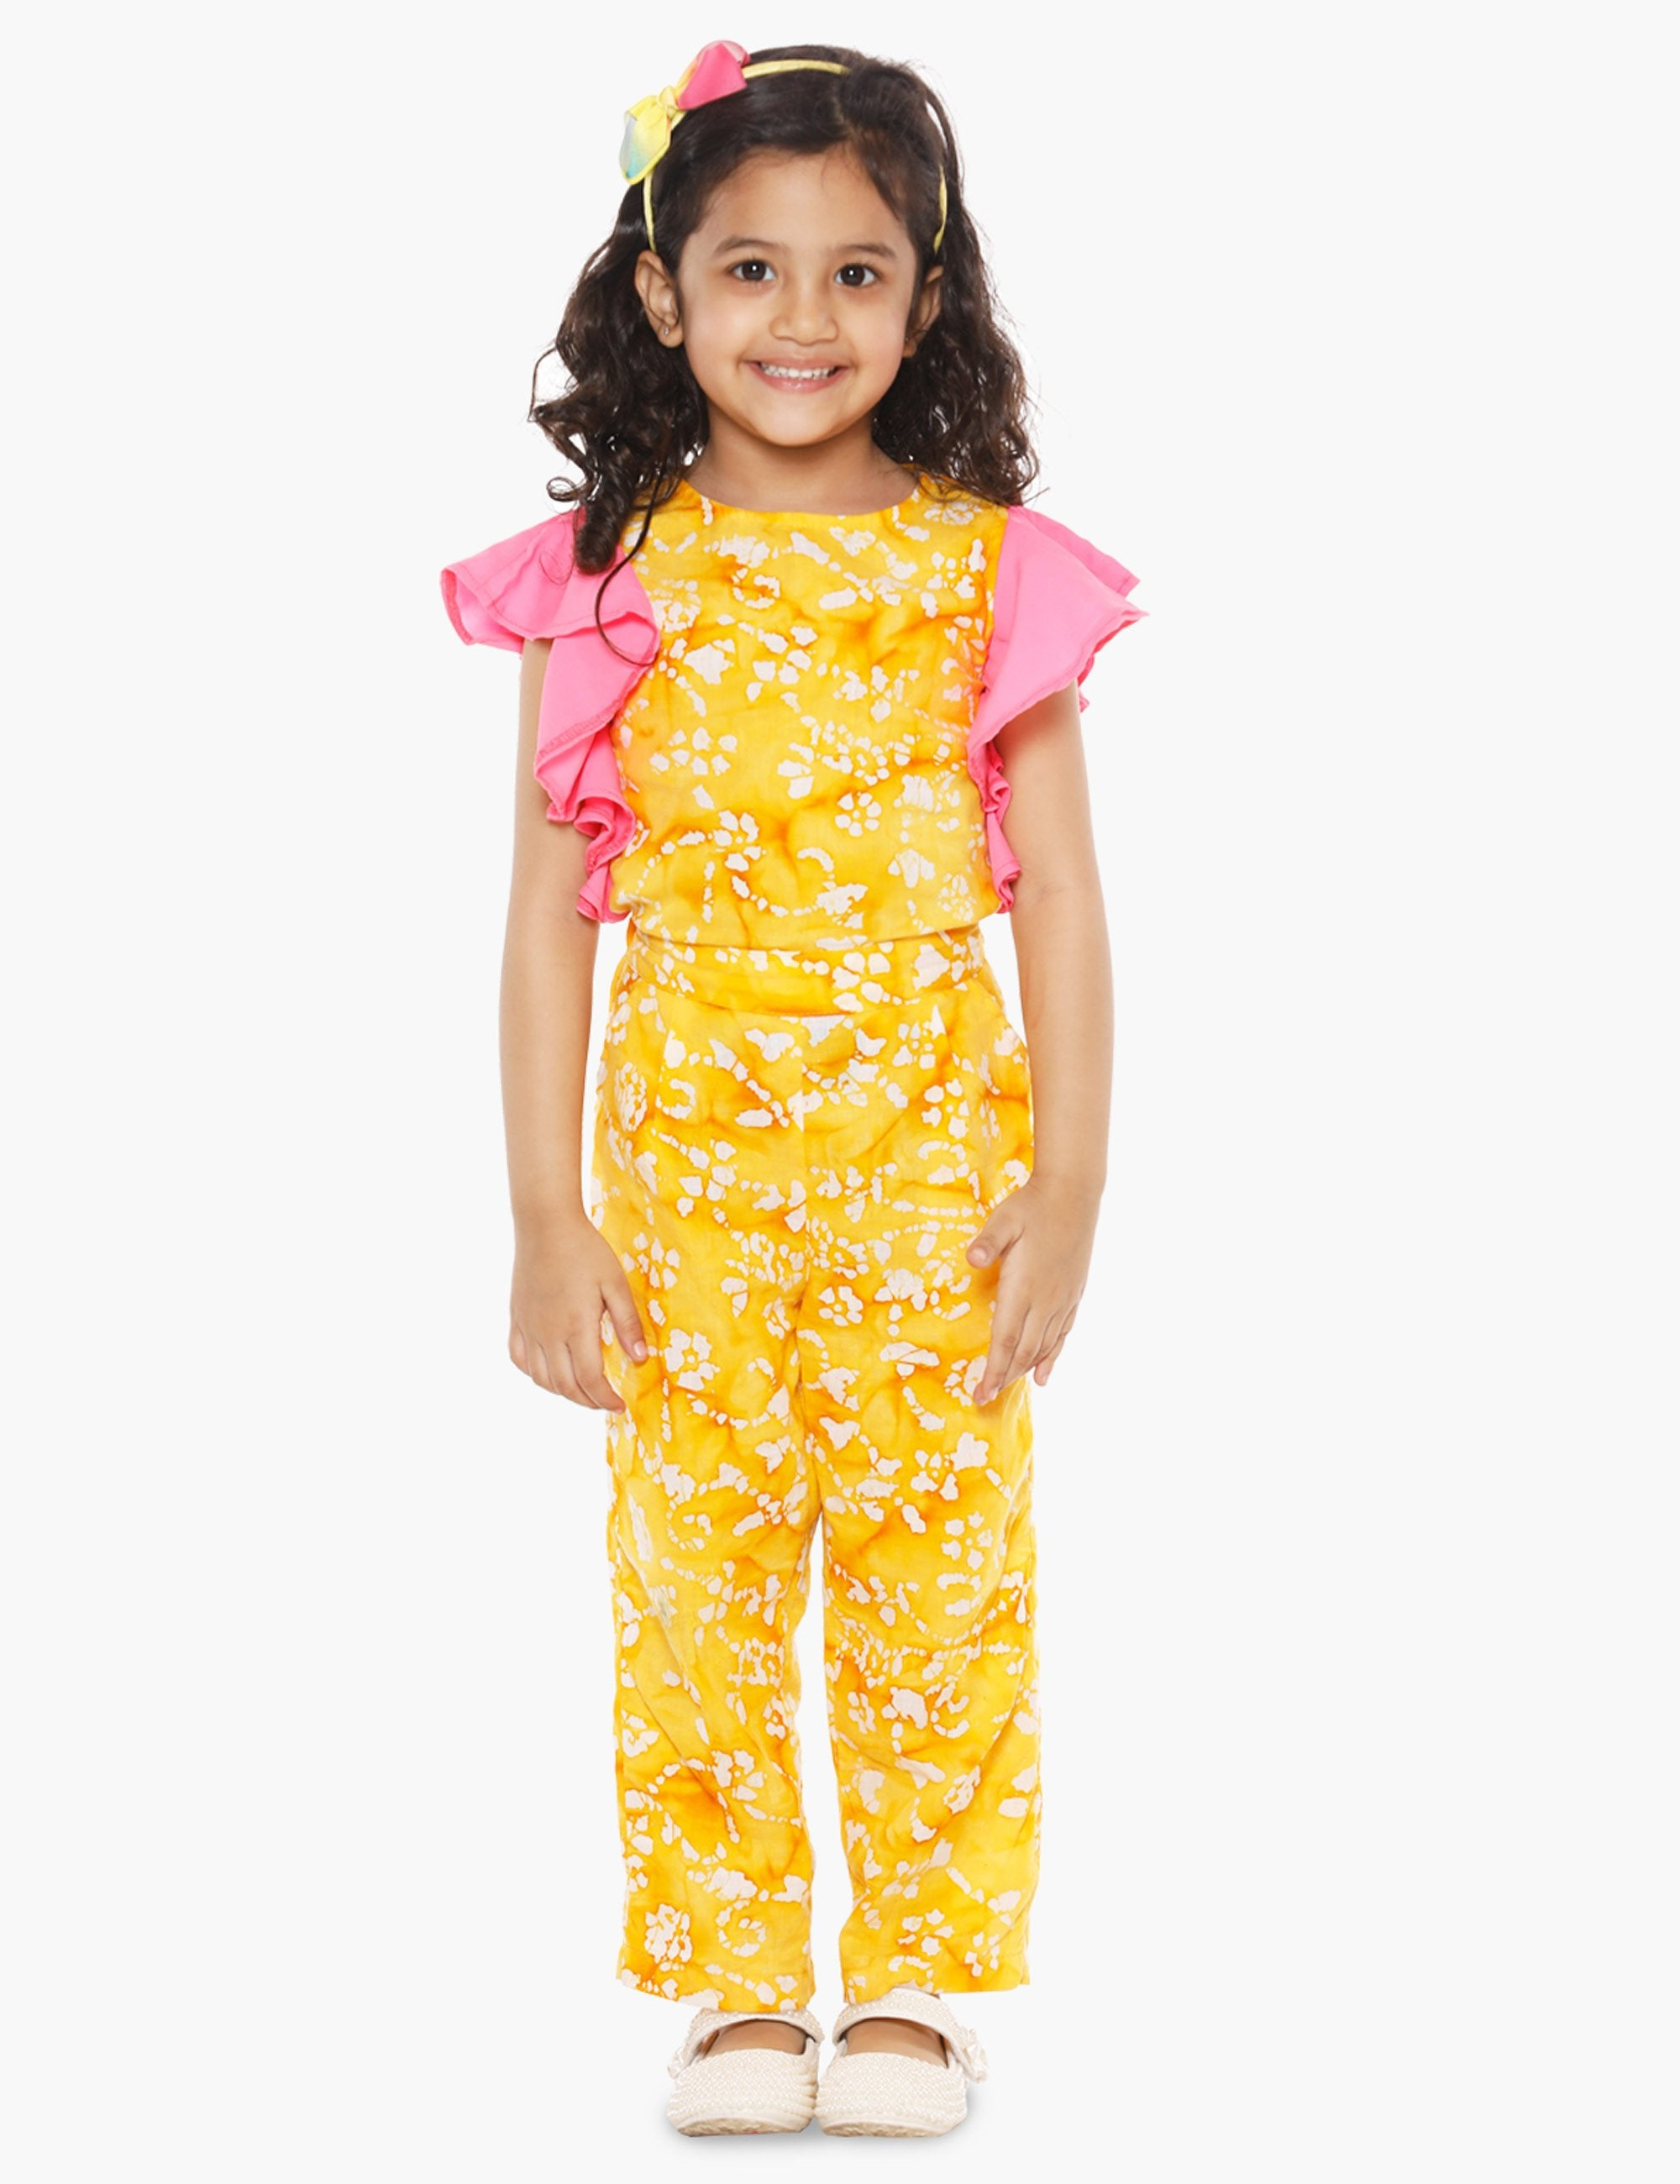 d916e4f69b Buy Yellow Frilly Full Jumpsuit. at best Price - Mini Firgun